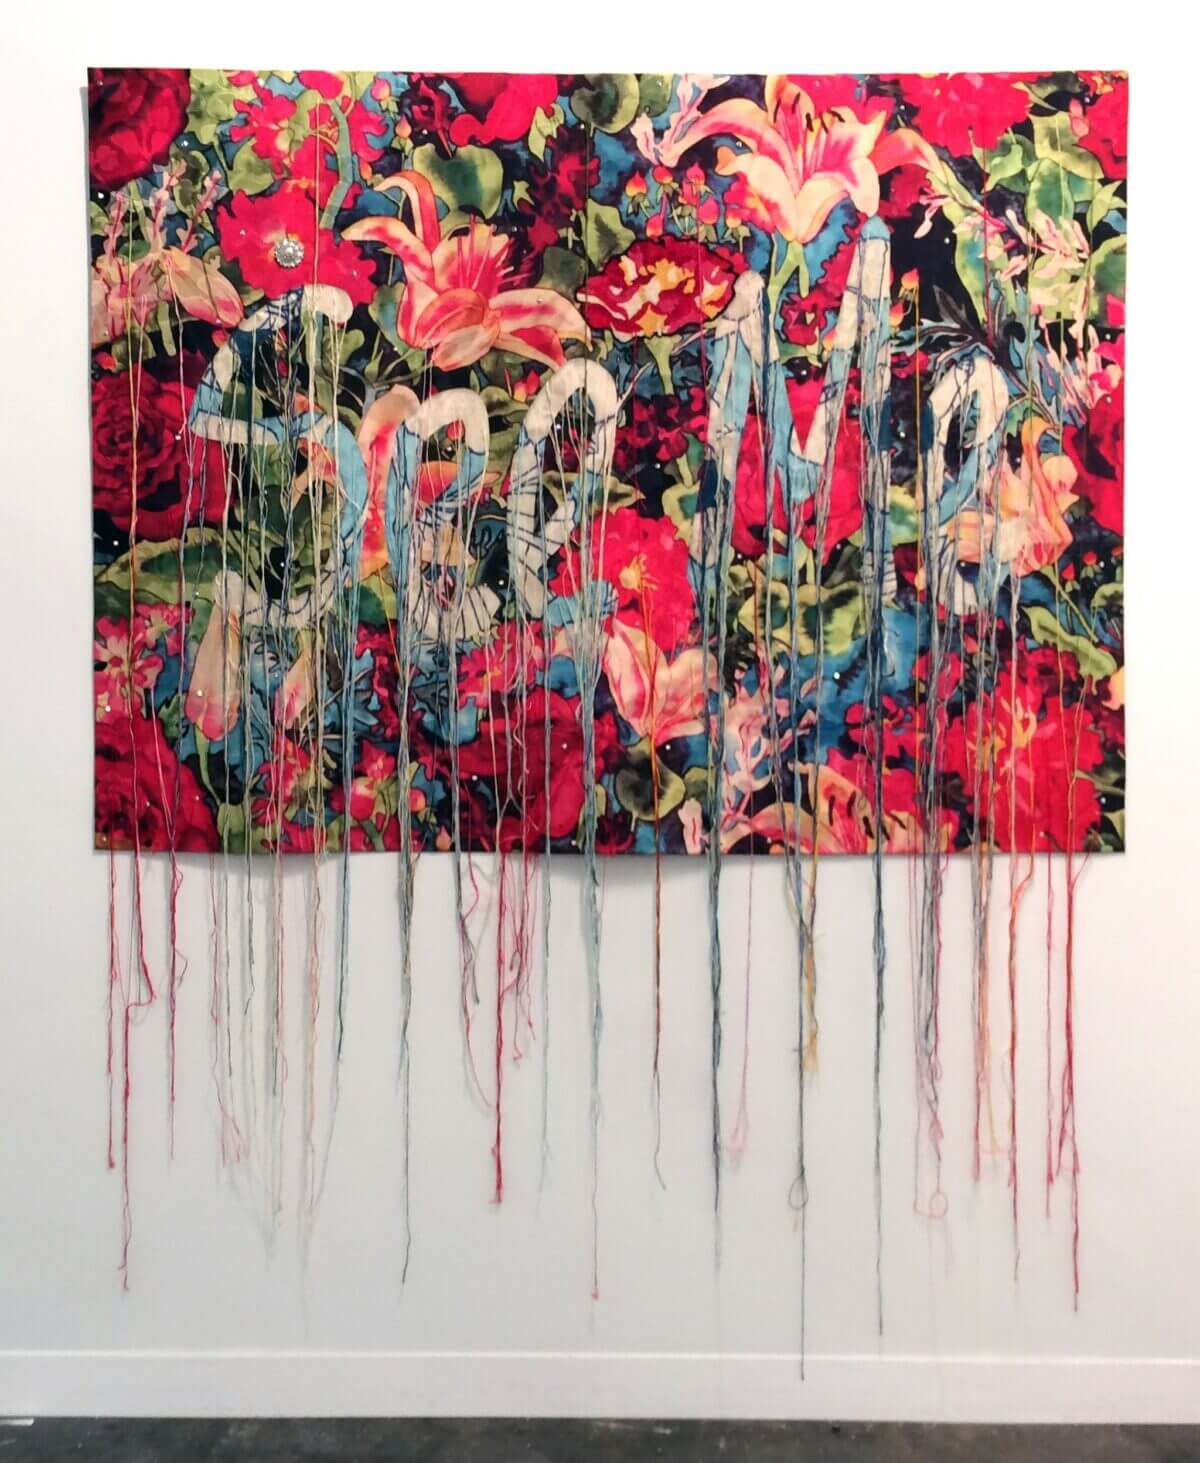 SOTHEBY'S UNVEILS THE SALE CONTENTS OF THE THIRD (RED) AUCTION Curated by Theaster Gates and Sir David Adjaye In Collaboration with Bono To Support the Fight Against AIDS